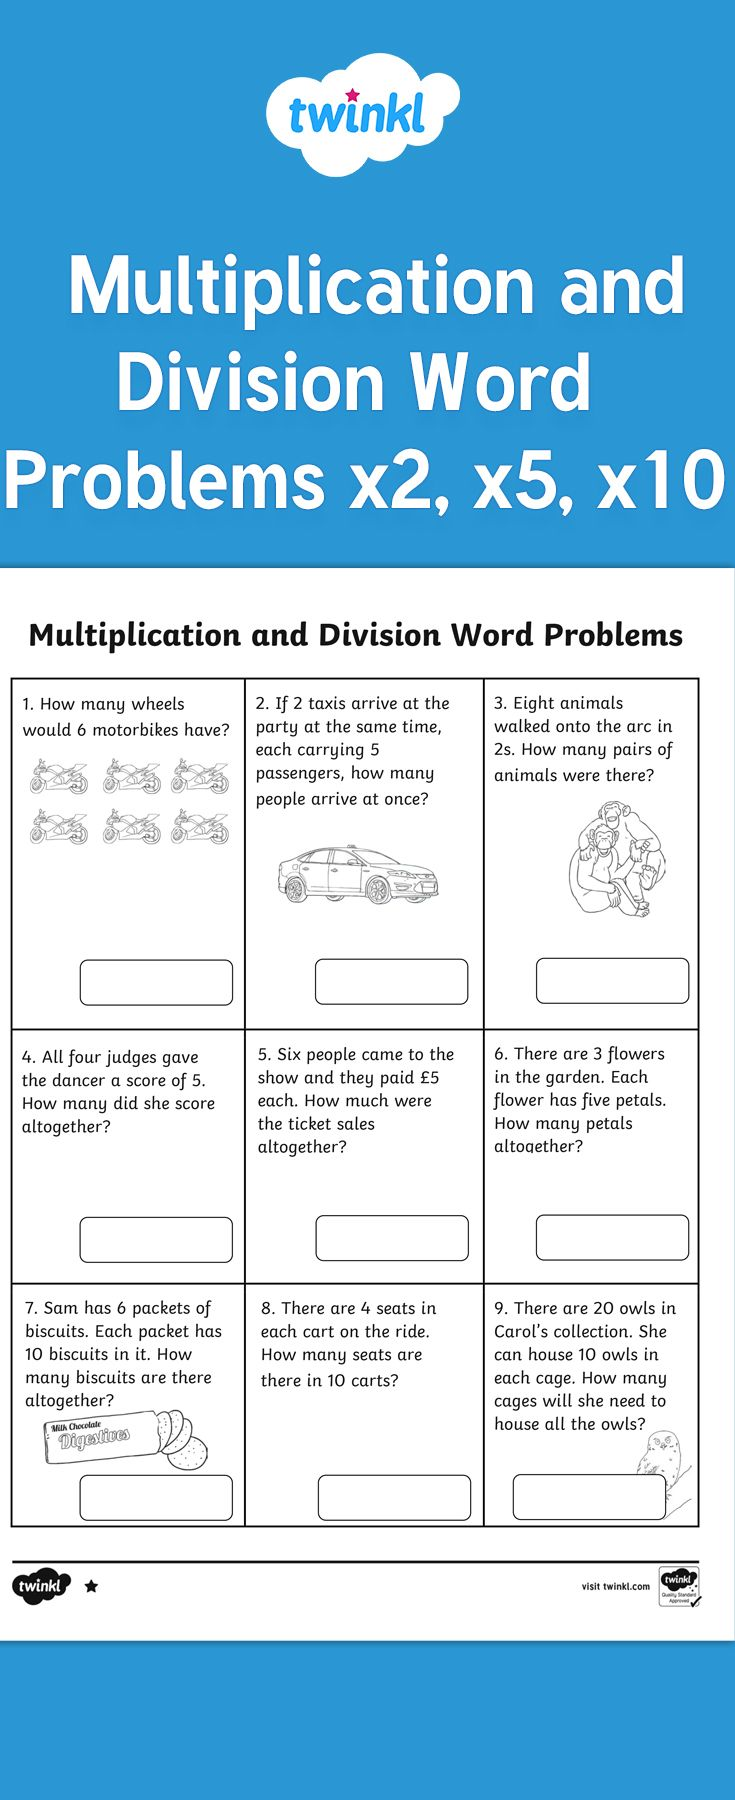 Year 2 Multiplication And Division Word Problems X2 X5 X10 Division Word Problems Multiplication And Division Word Problems Word Problems Division worksheet year twinkl